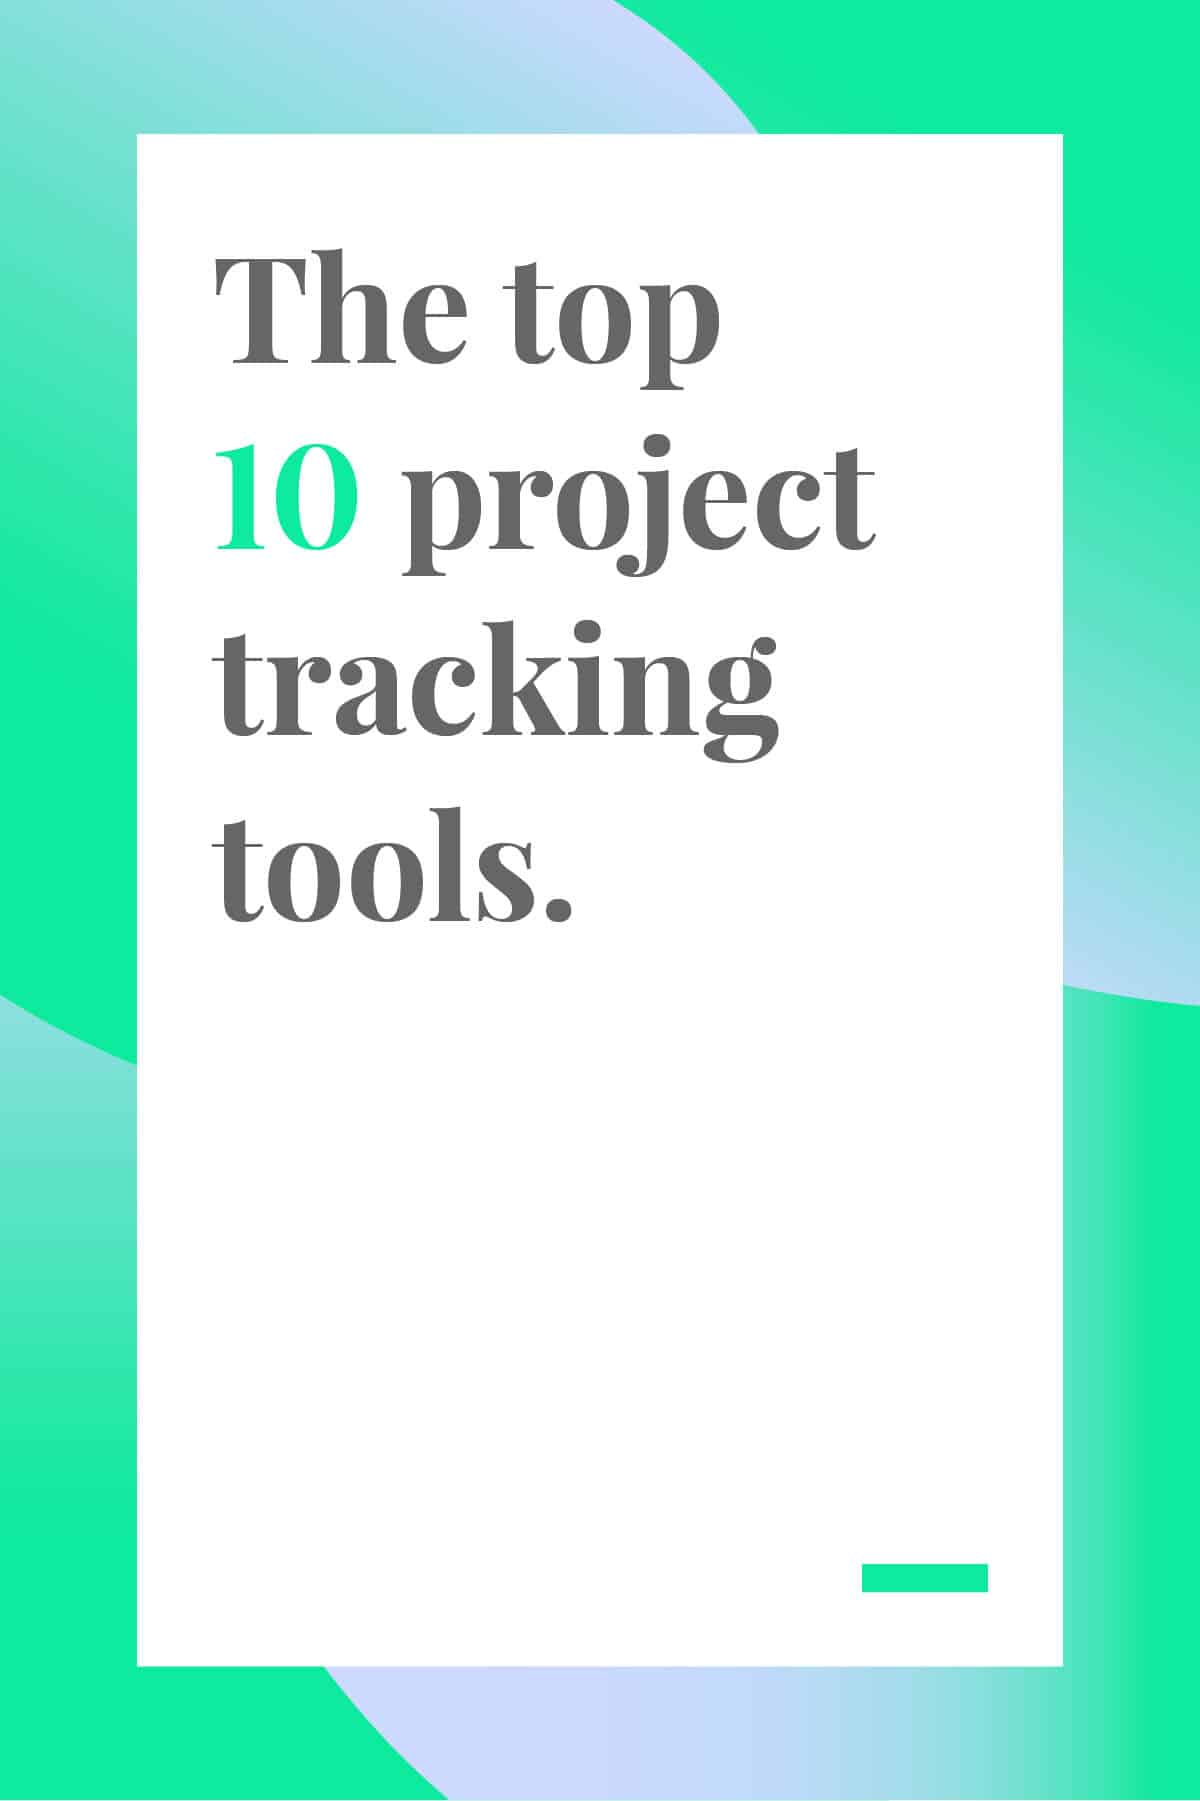 If you're juggling multiple projects at once, you need a robust project tracking tool to help you keep track of all the moving parts. This round-up of the top 10 project tracking tools will help you find the perfect tool. #projectmanagement #projecttracking #planningtools